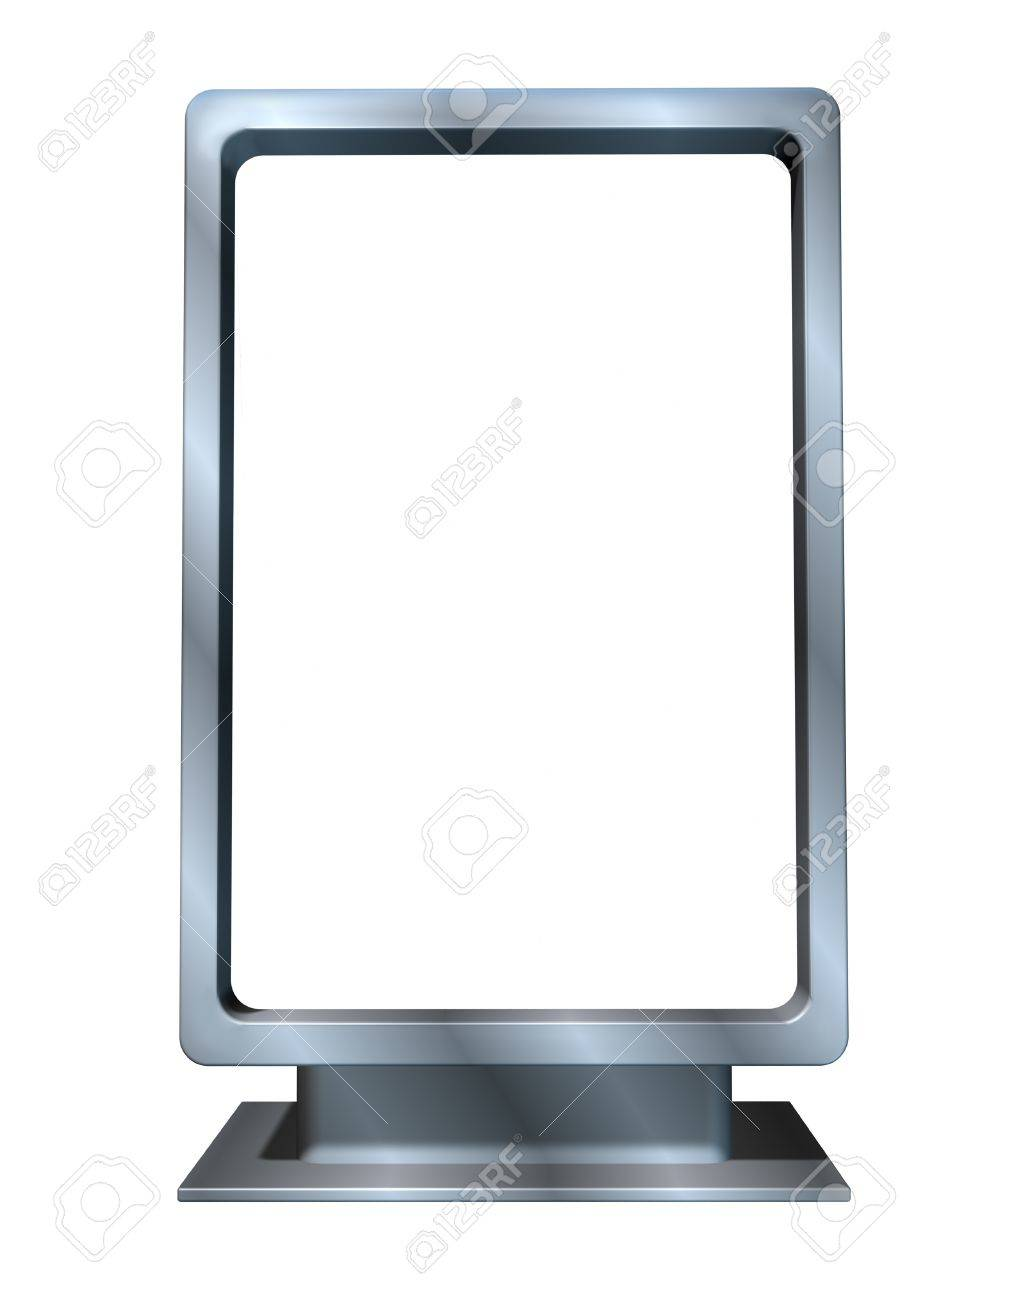 Marketing and advertising campaign with a single blank vertical billboard made of shiny metal in a dynamic angle as a sales display for an ad program for selling goods and services for  businesses . Stock Photo - 11404966